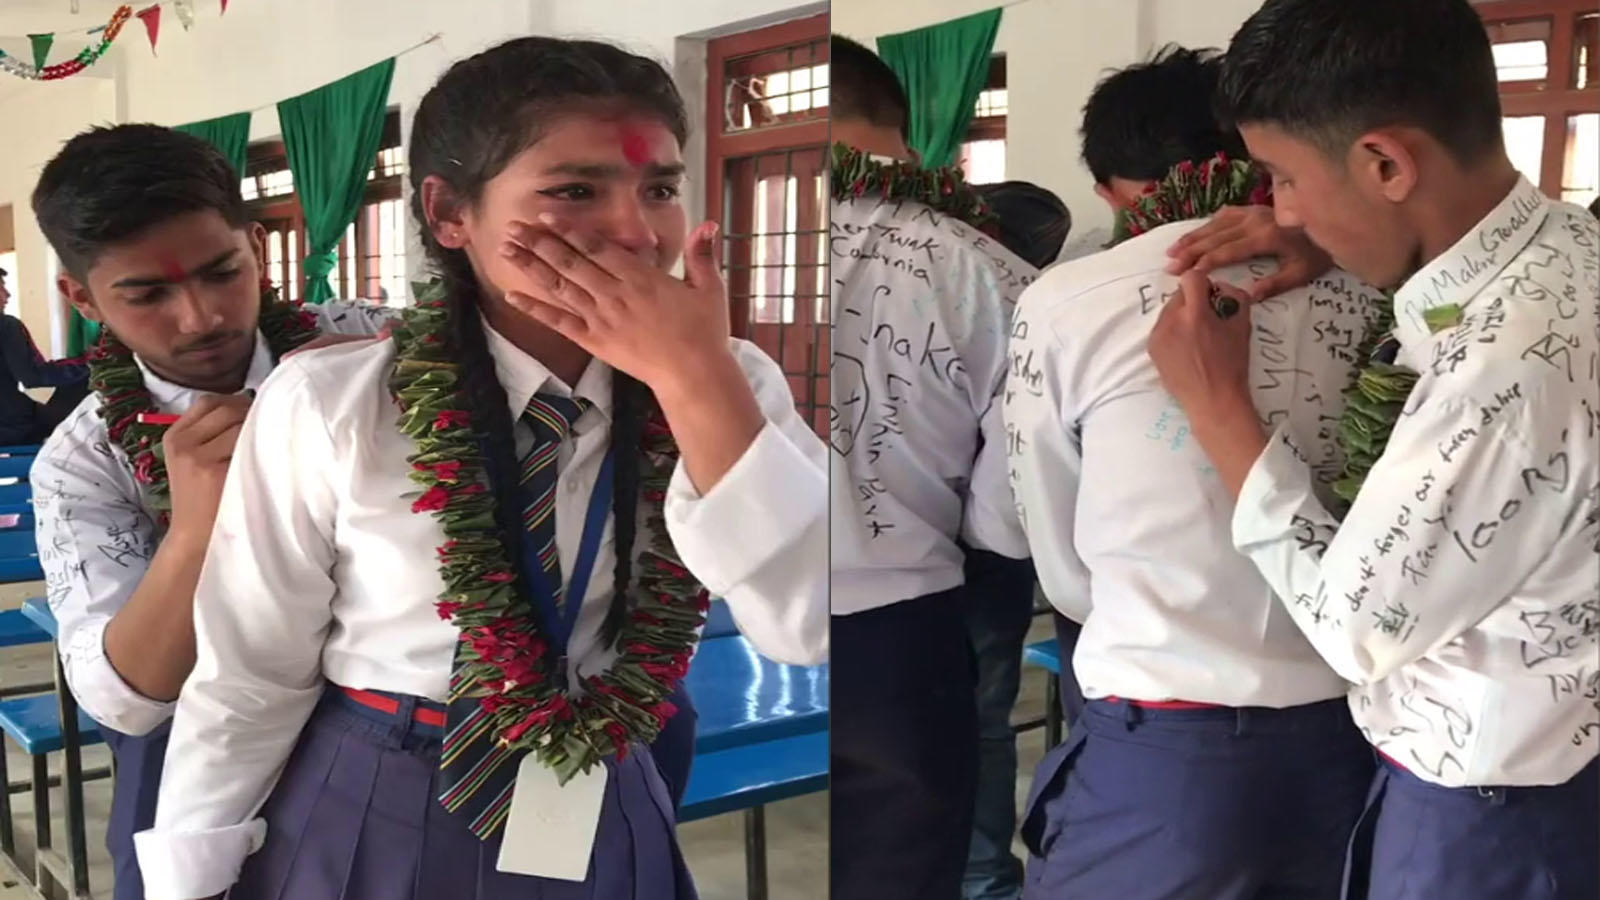 watch-an-emotional-farewell-to-friends-on-last-day-of-school